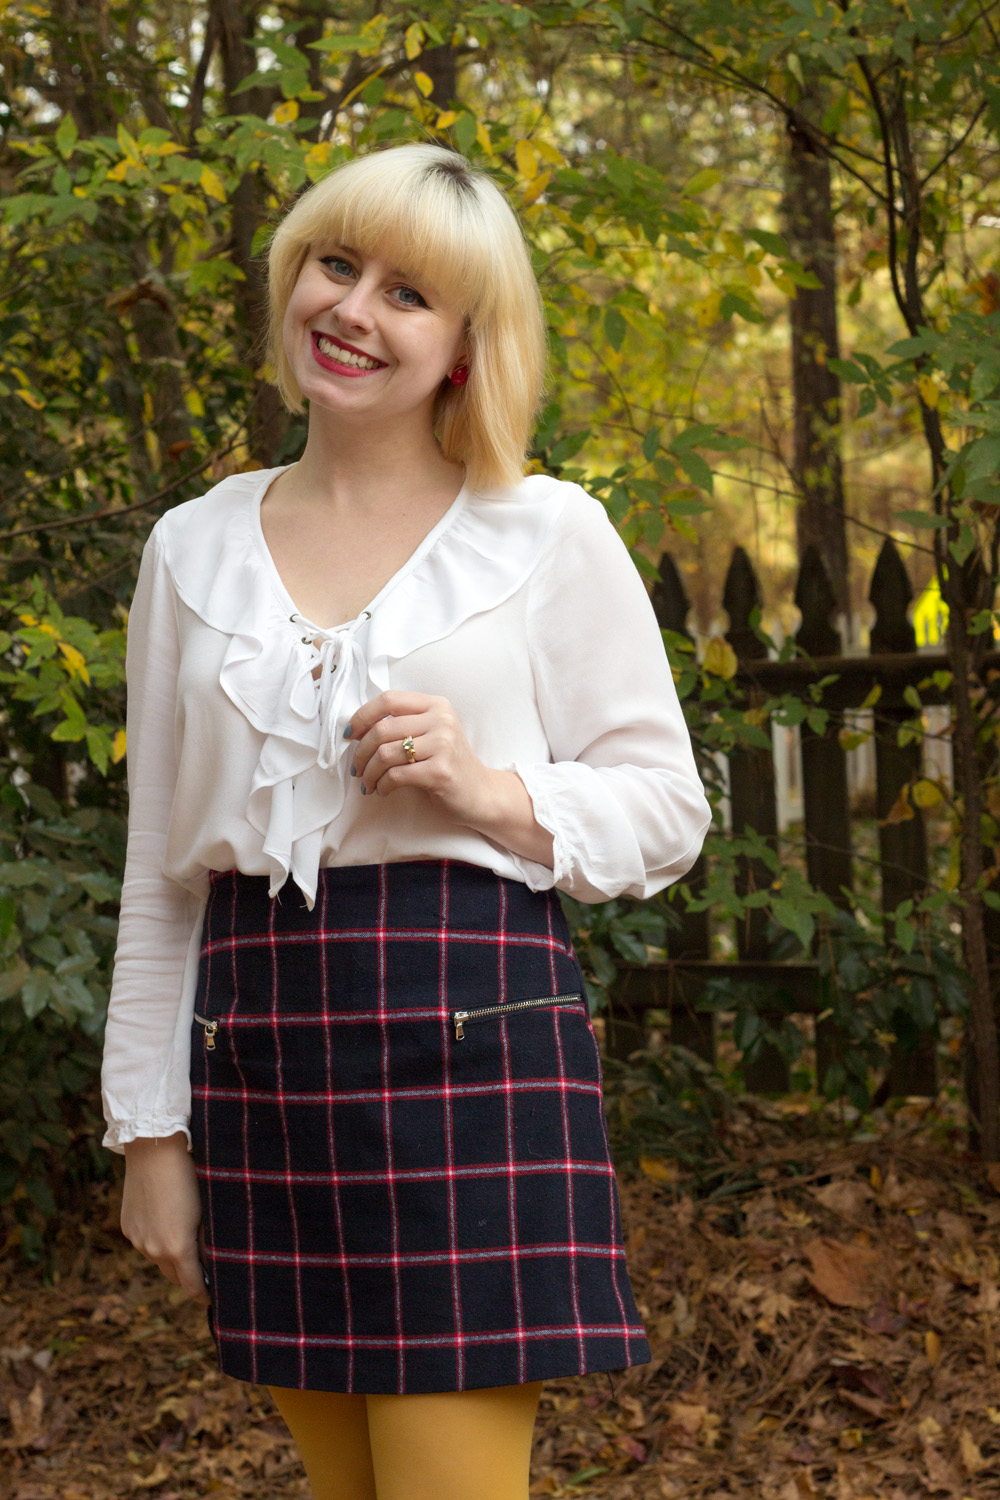 Forever 21 Ruffled Lace Up Blouse with Blue and White Plaid Skirt